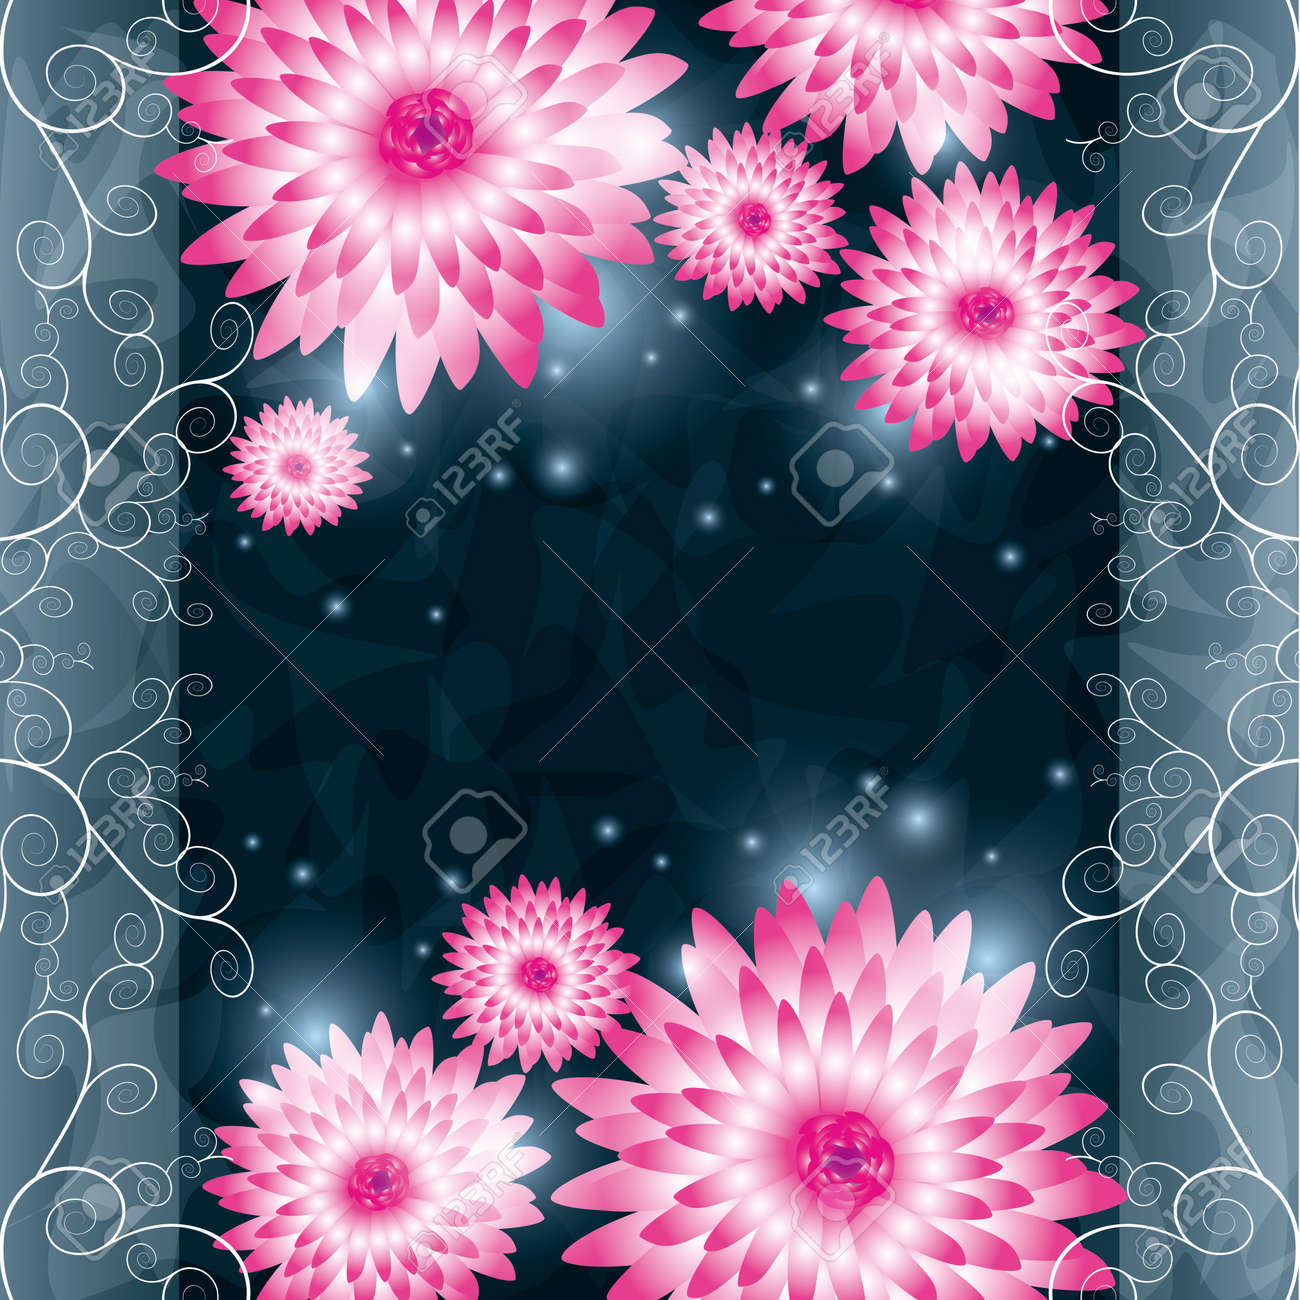 Floral background with pink flowers chrysanthemum and ornament. Greeting or invitation card in retro or grunge style. illustration Stock Vector - 15874402